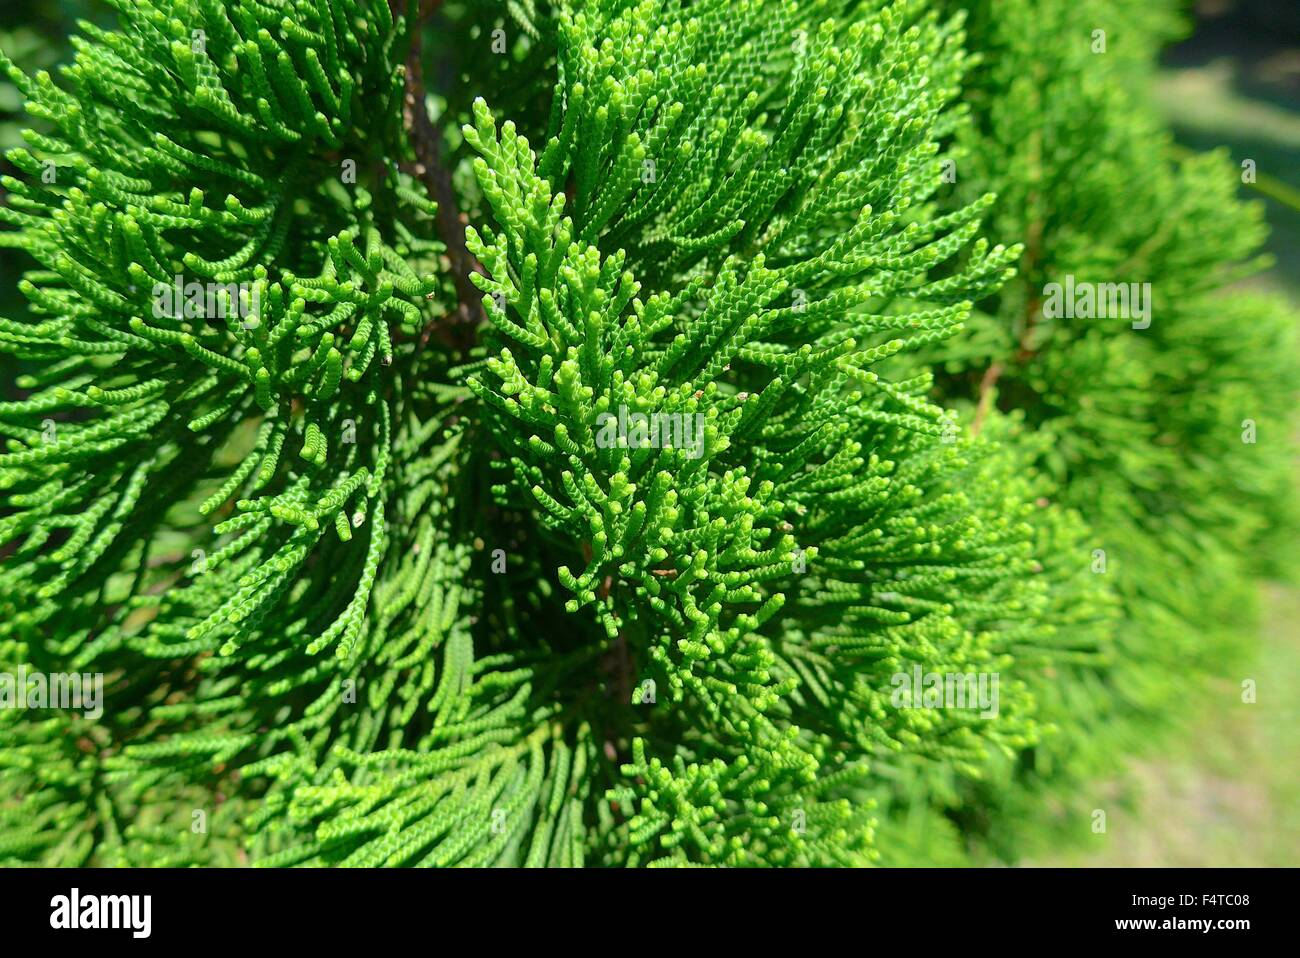 The close view of conifer leaves at park - Stock Image